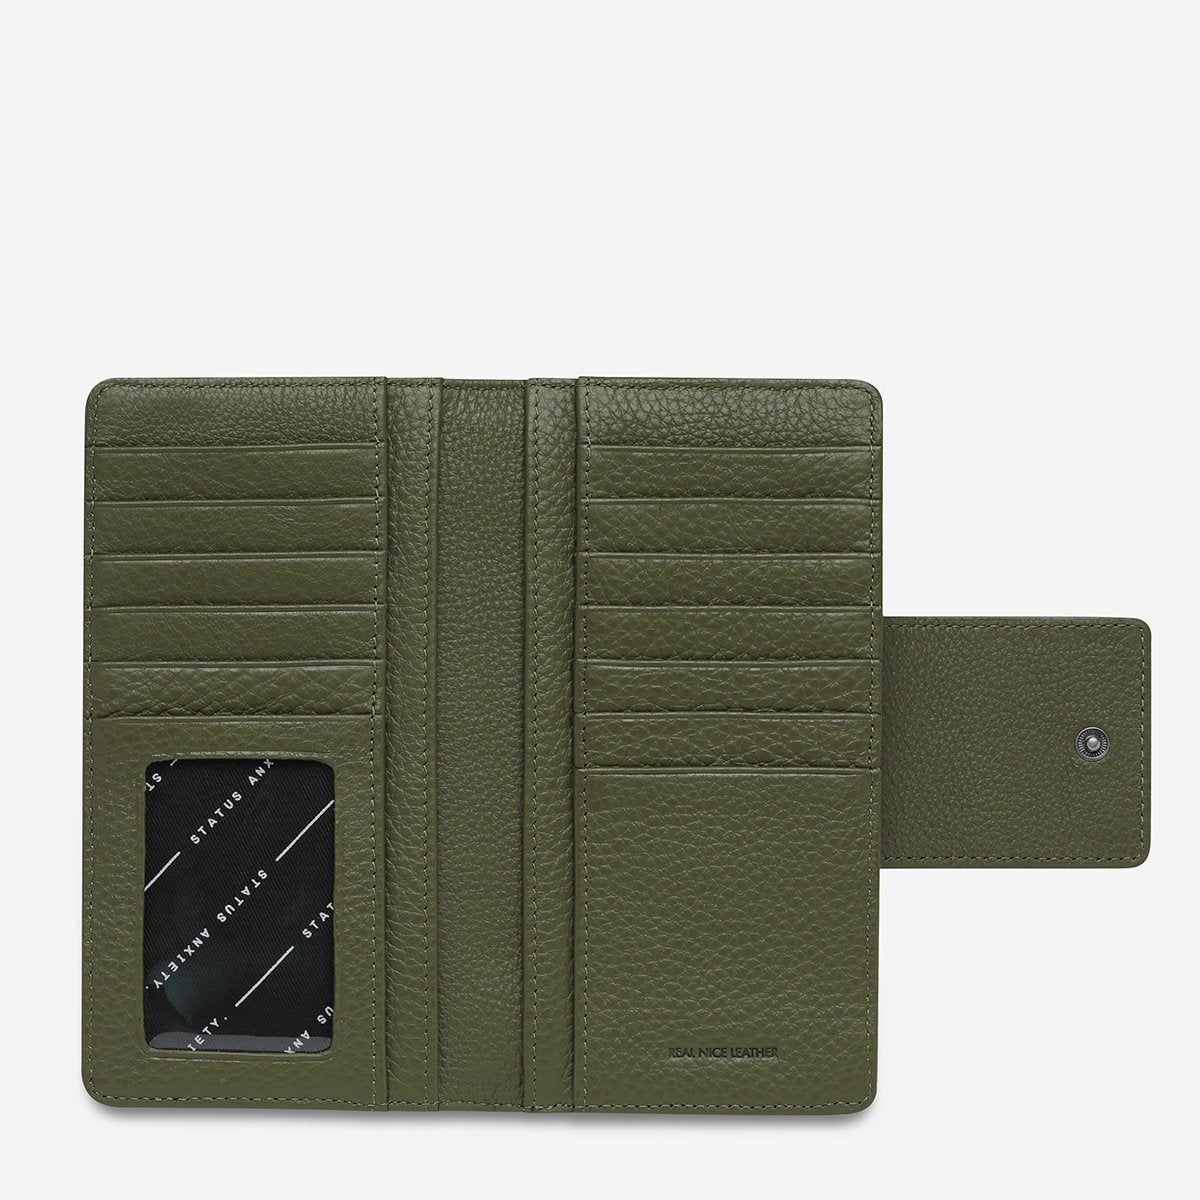 STATUS ANXIETY RUINS WALLET - KHAKI